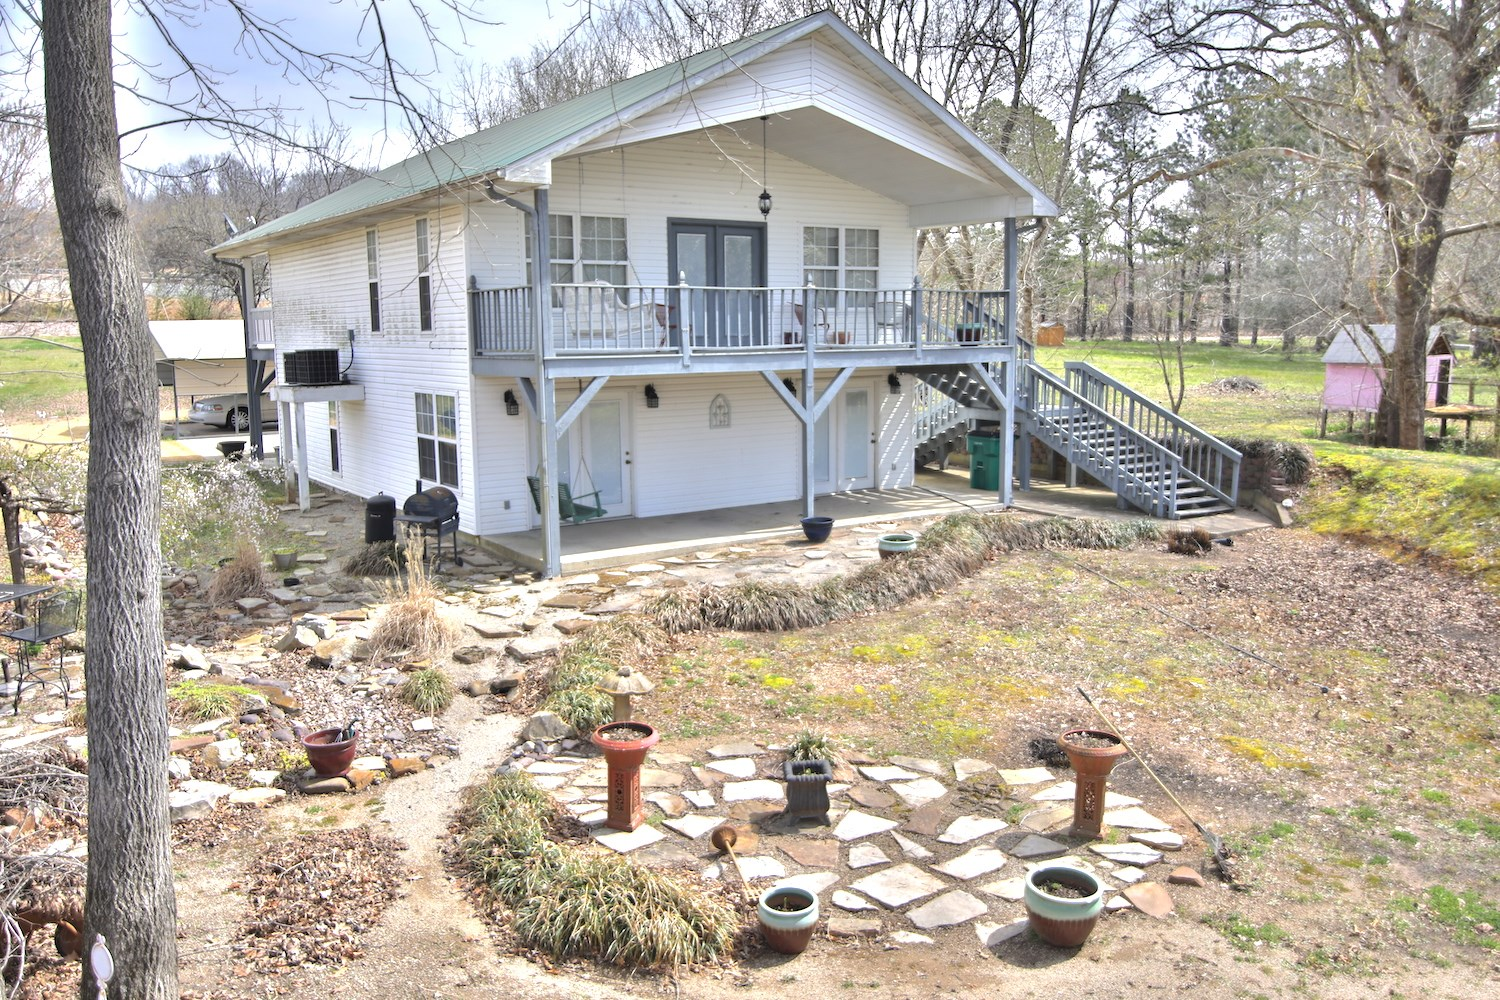 Home for Sale on Spring River Mammoth Spring, Arkansas